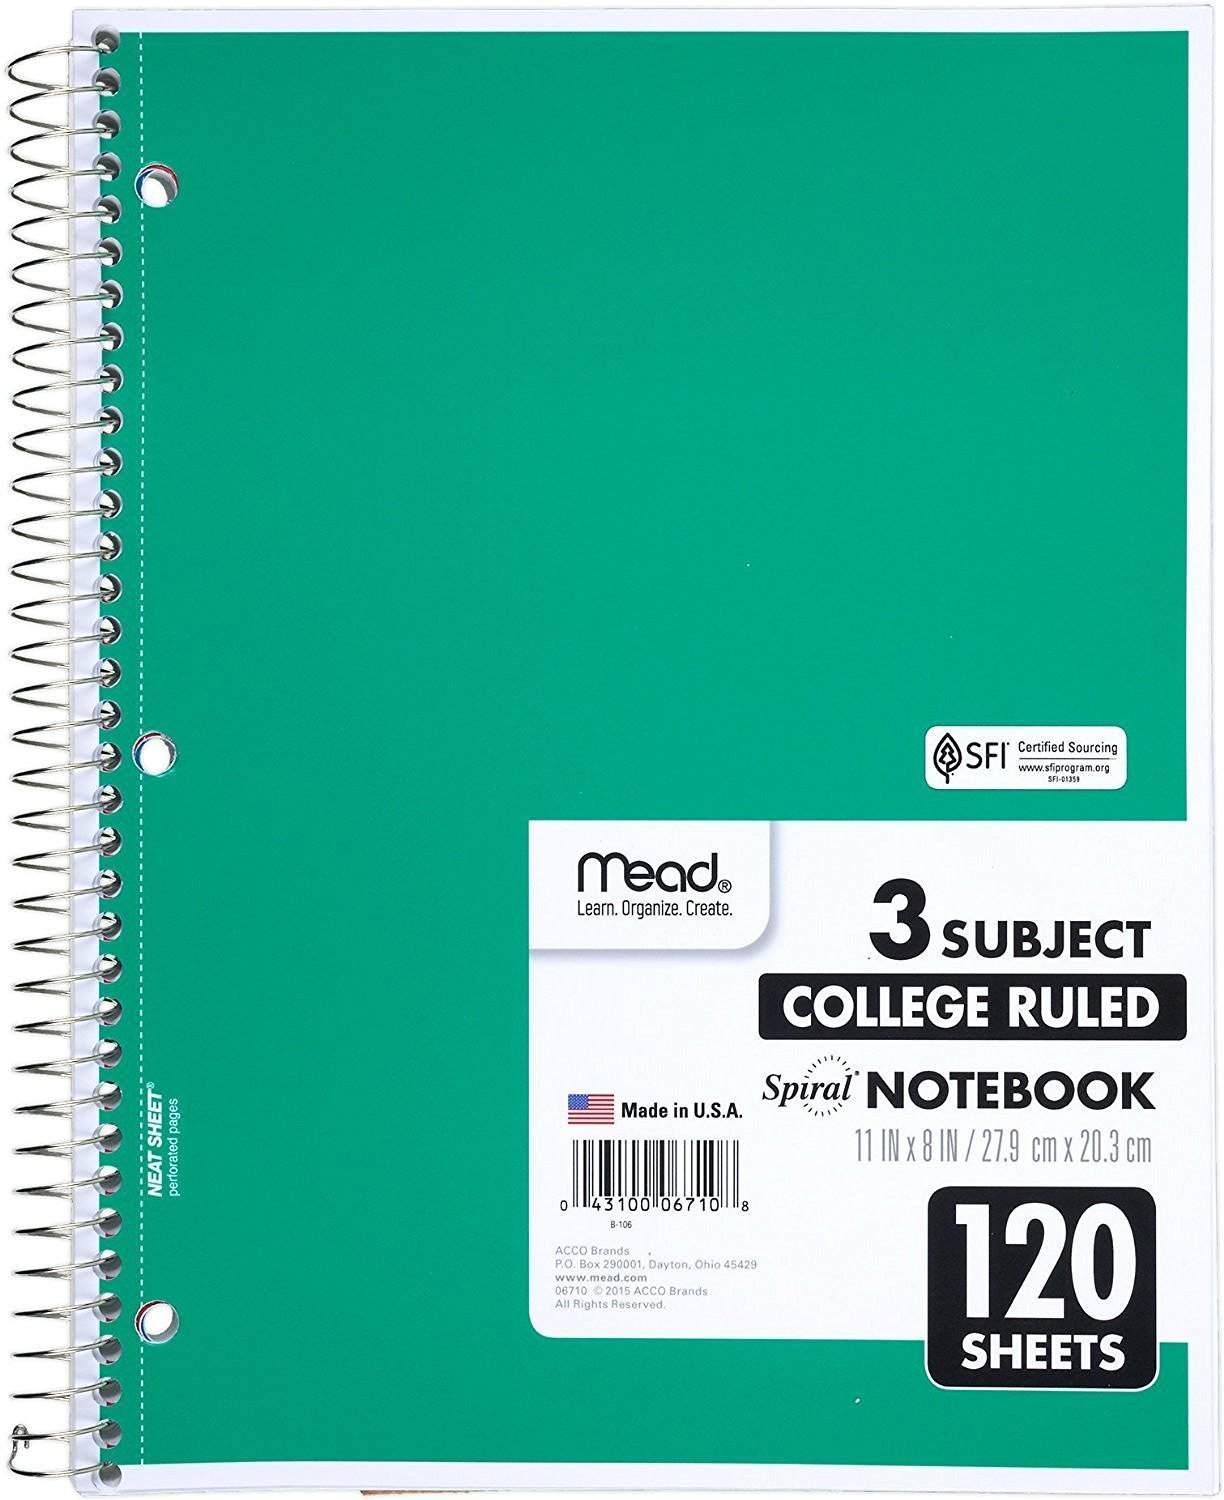 "3 Pk. Mead Spiral Notebook, 3 Subject, College Ruled, 120 Sheets, 11"" x 8.5"", Assorted Colors"